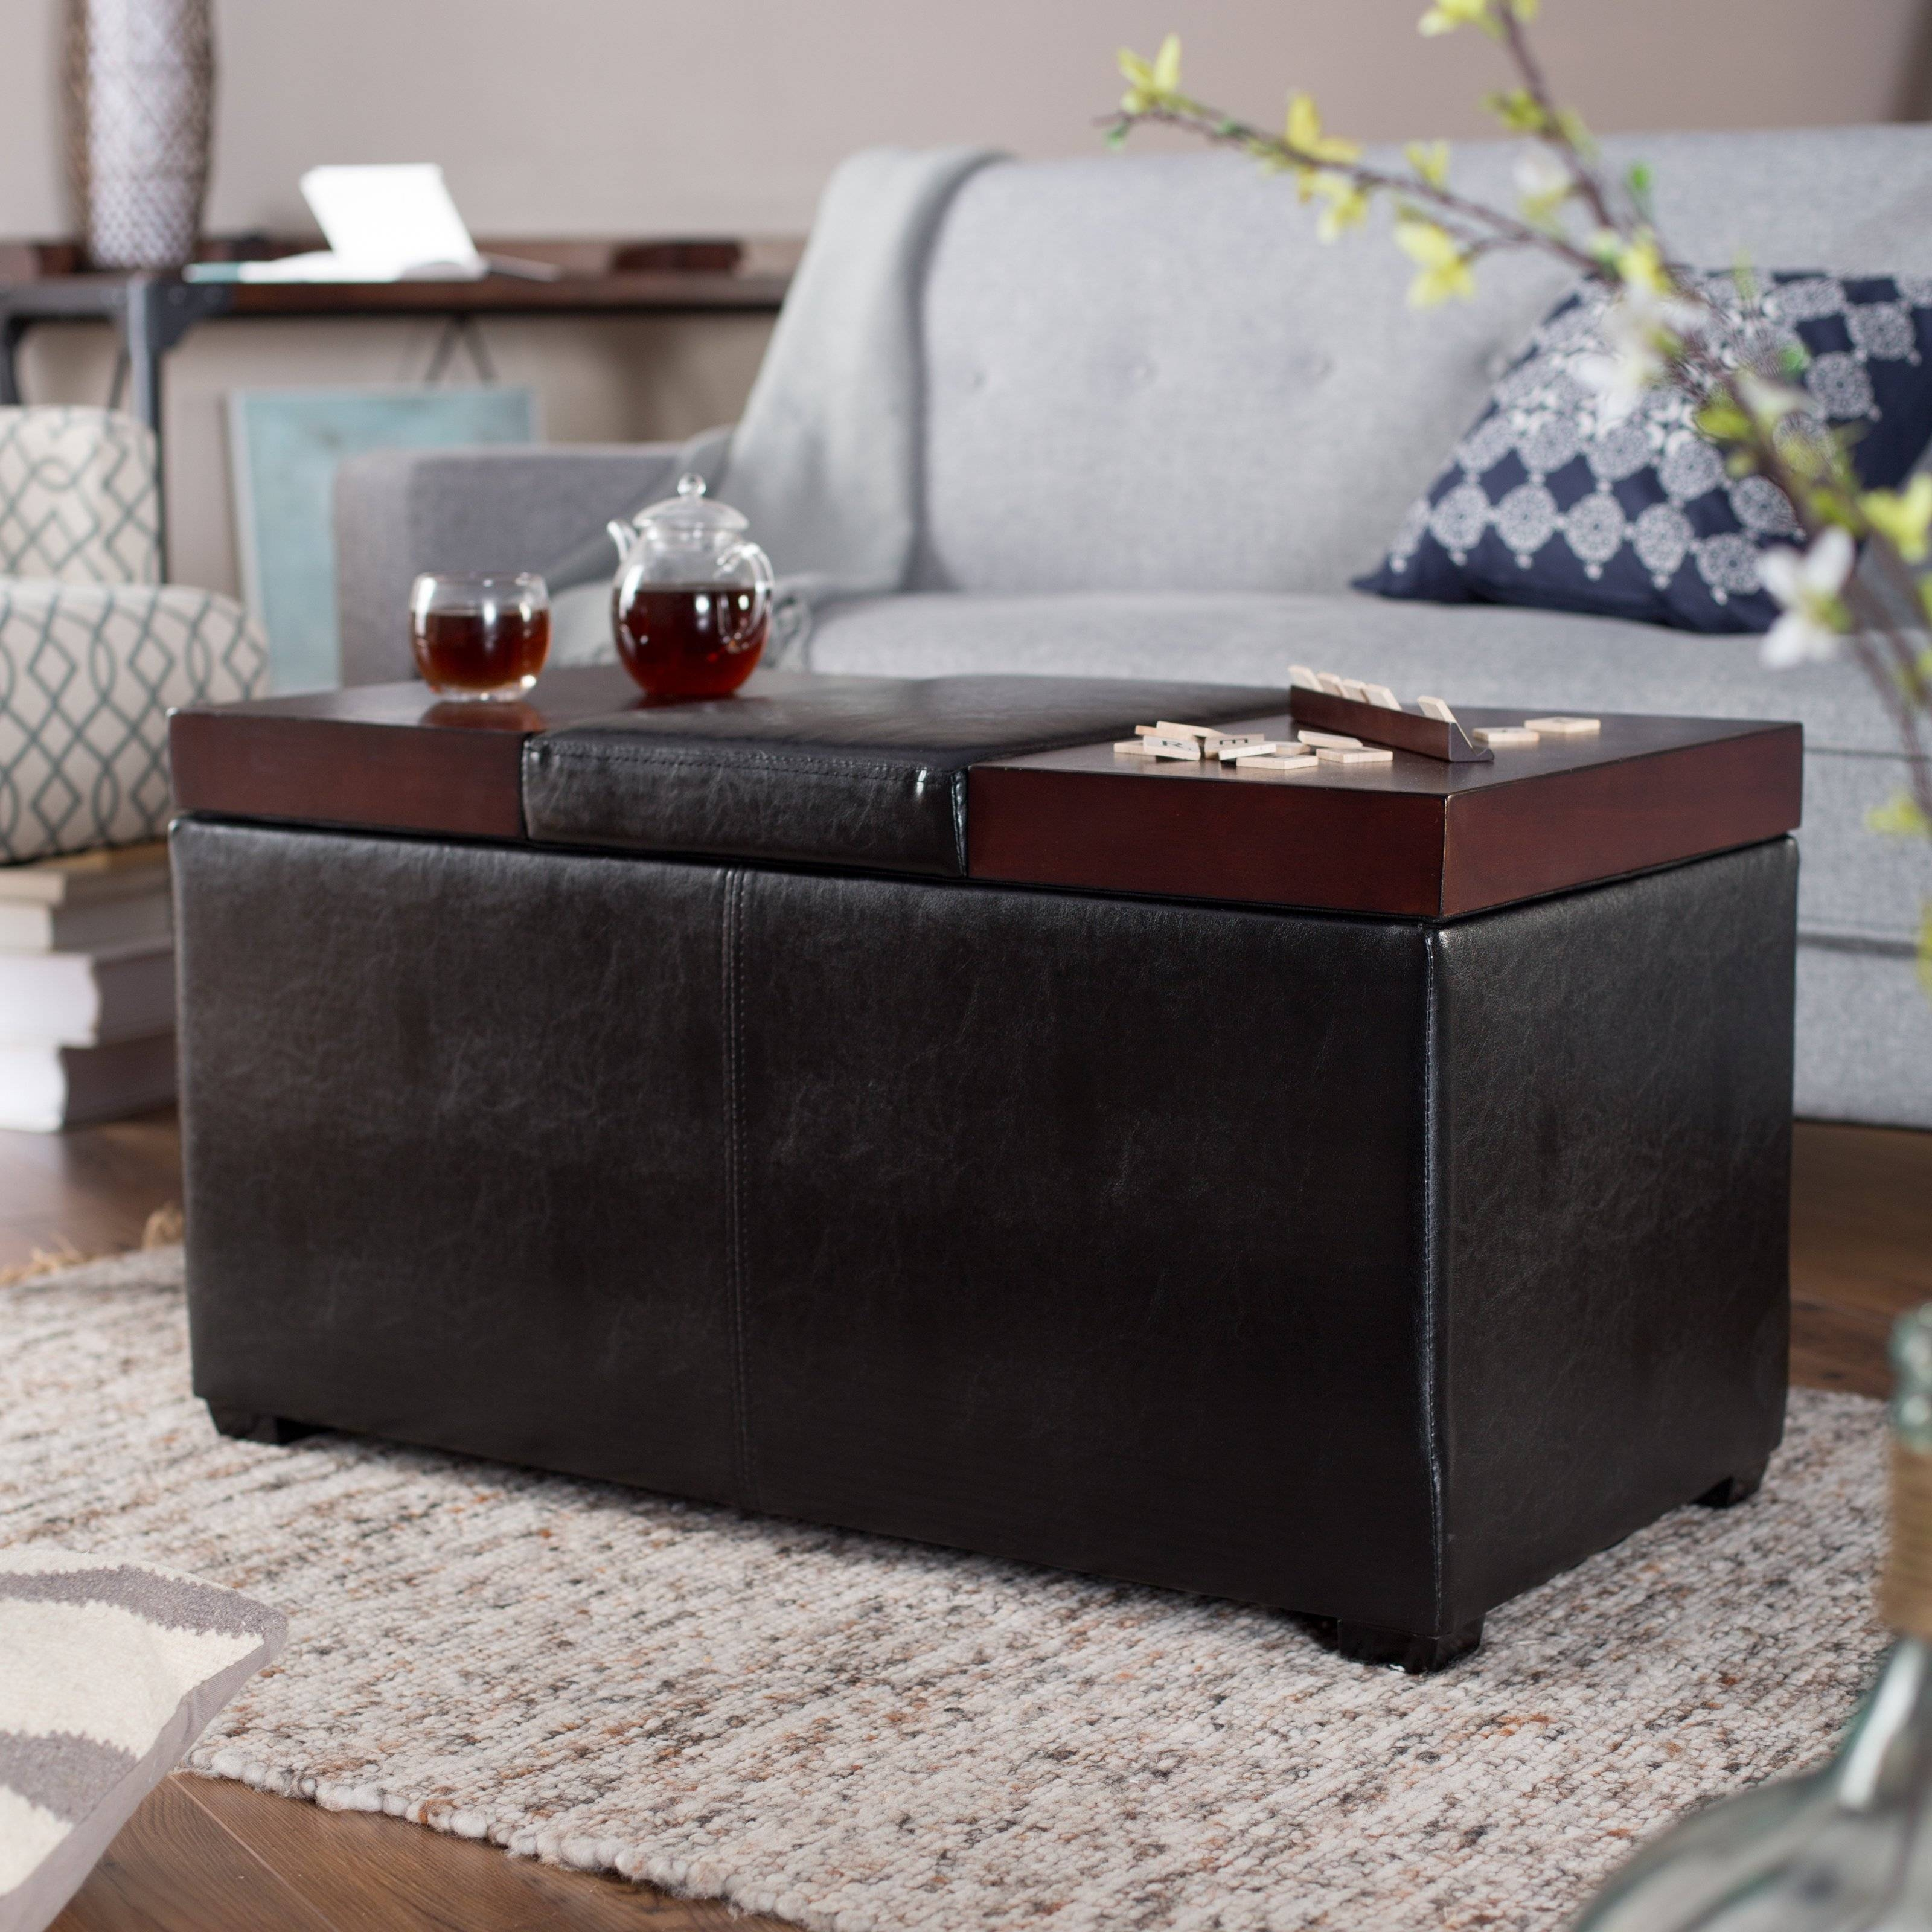 Mainstays Lift-Top Coffee Table, Multiple Colors - Walmart for Coffee Tables With Lift Top Storage (Image 21 of 30)